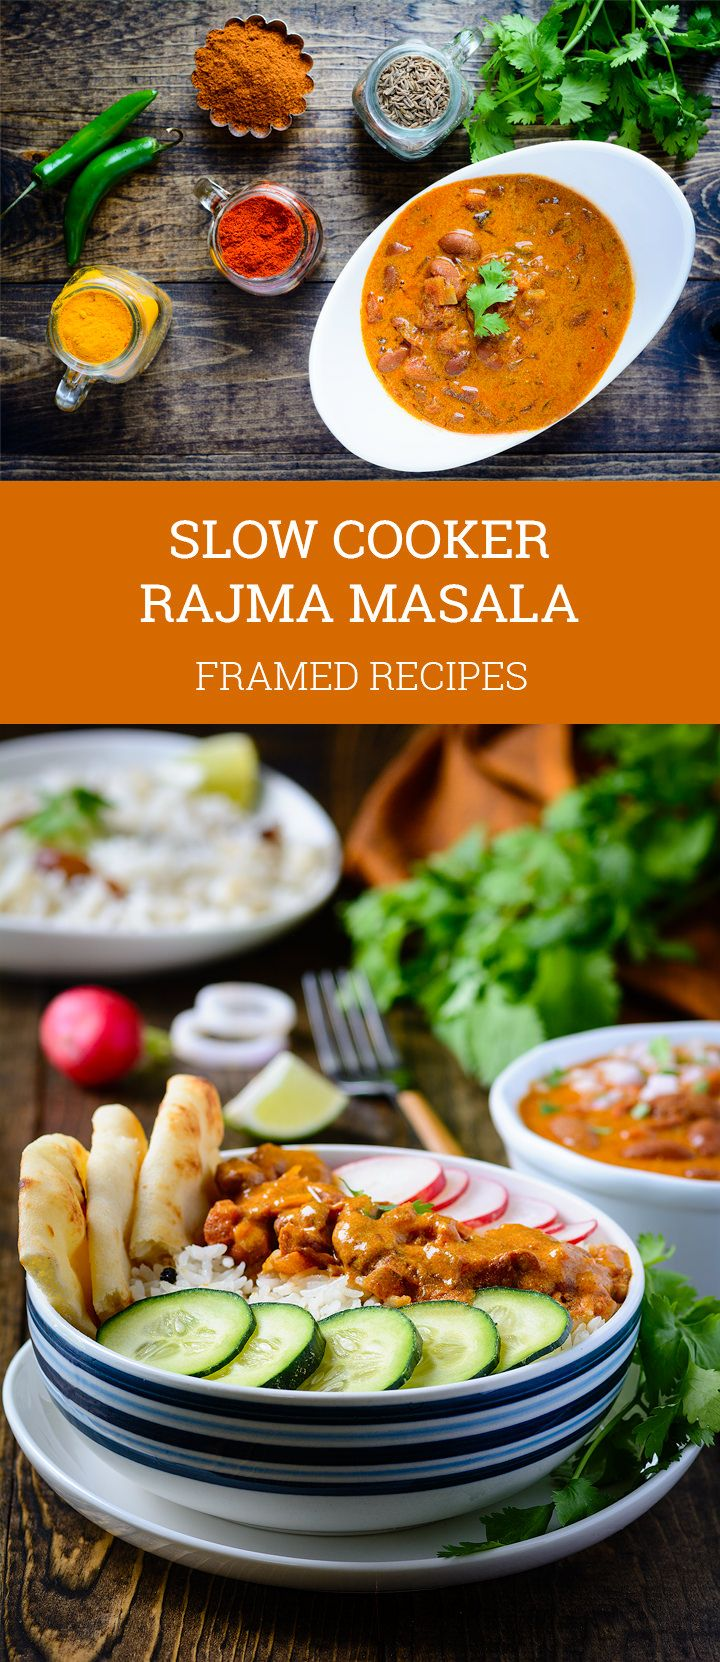 This is the lazy person's dump-it-all-and-forget-it kind of slow cooker rajma masala bowl. But this is the richest, most flavorsome and creamiest rajma masala (Indian style beans and rice bowl) you would have ever tasted.